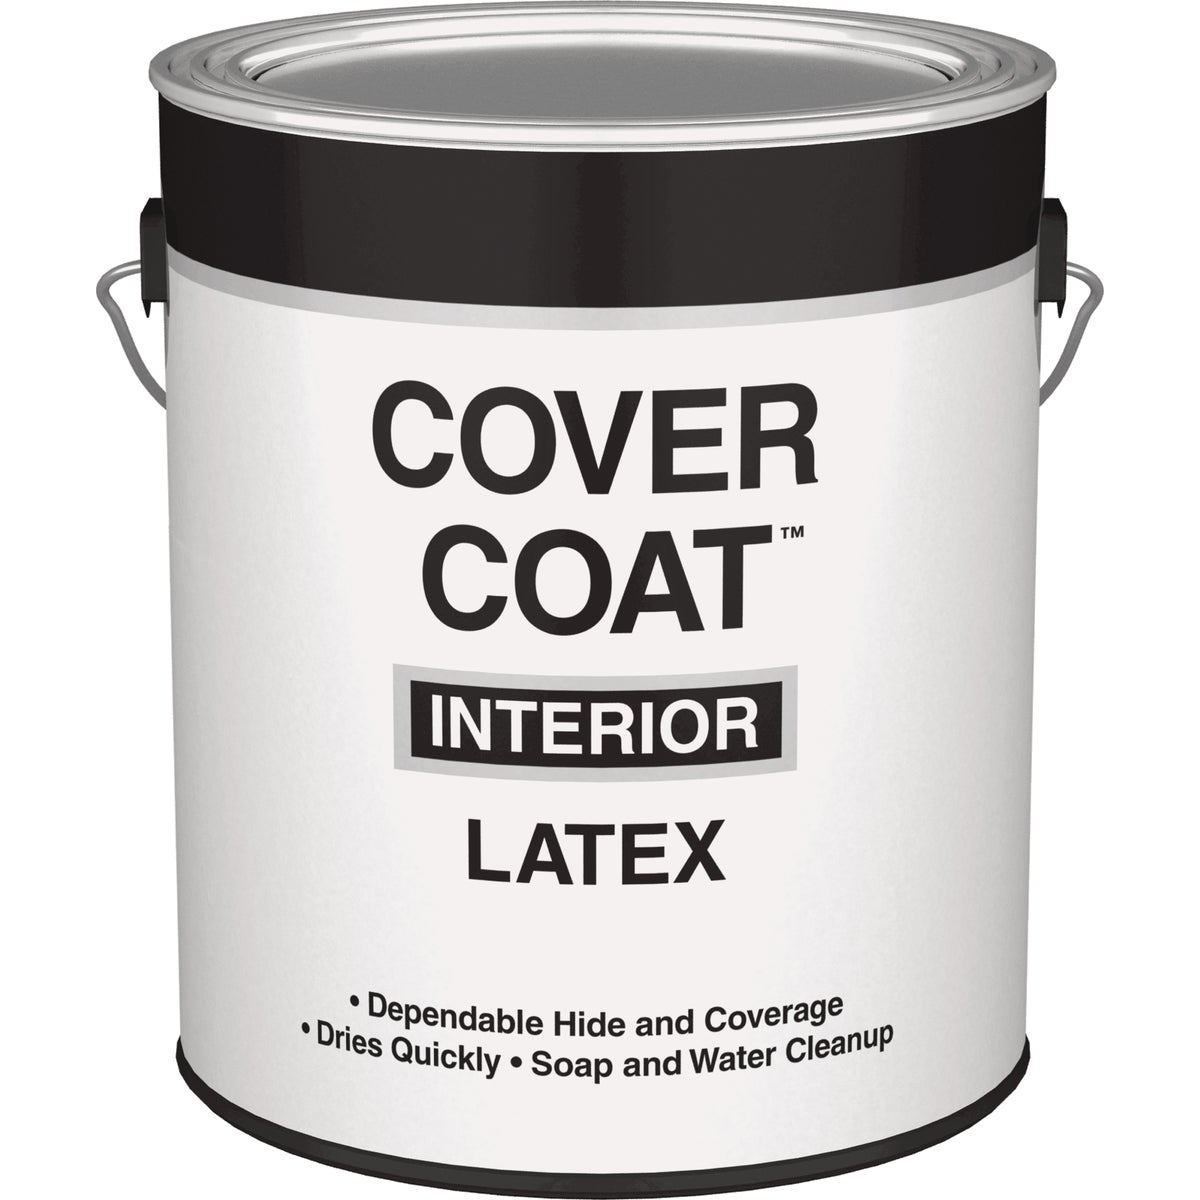 INT S/G WHITE PAINT - 044.0000455.007 by Valspar Corp